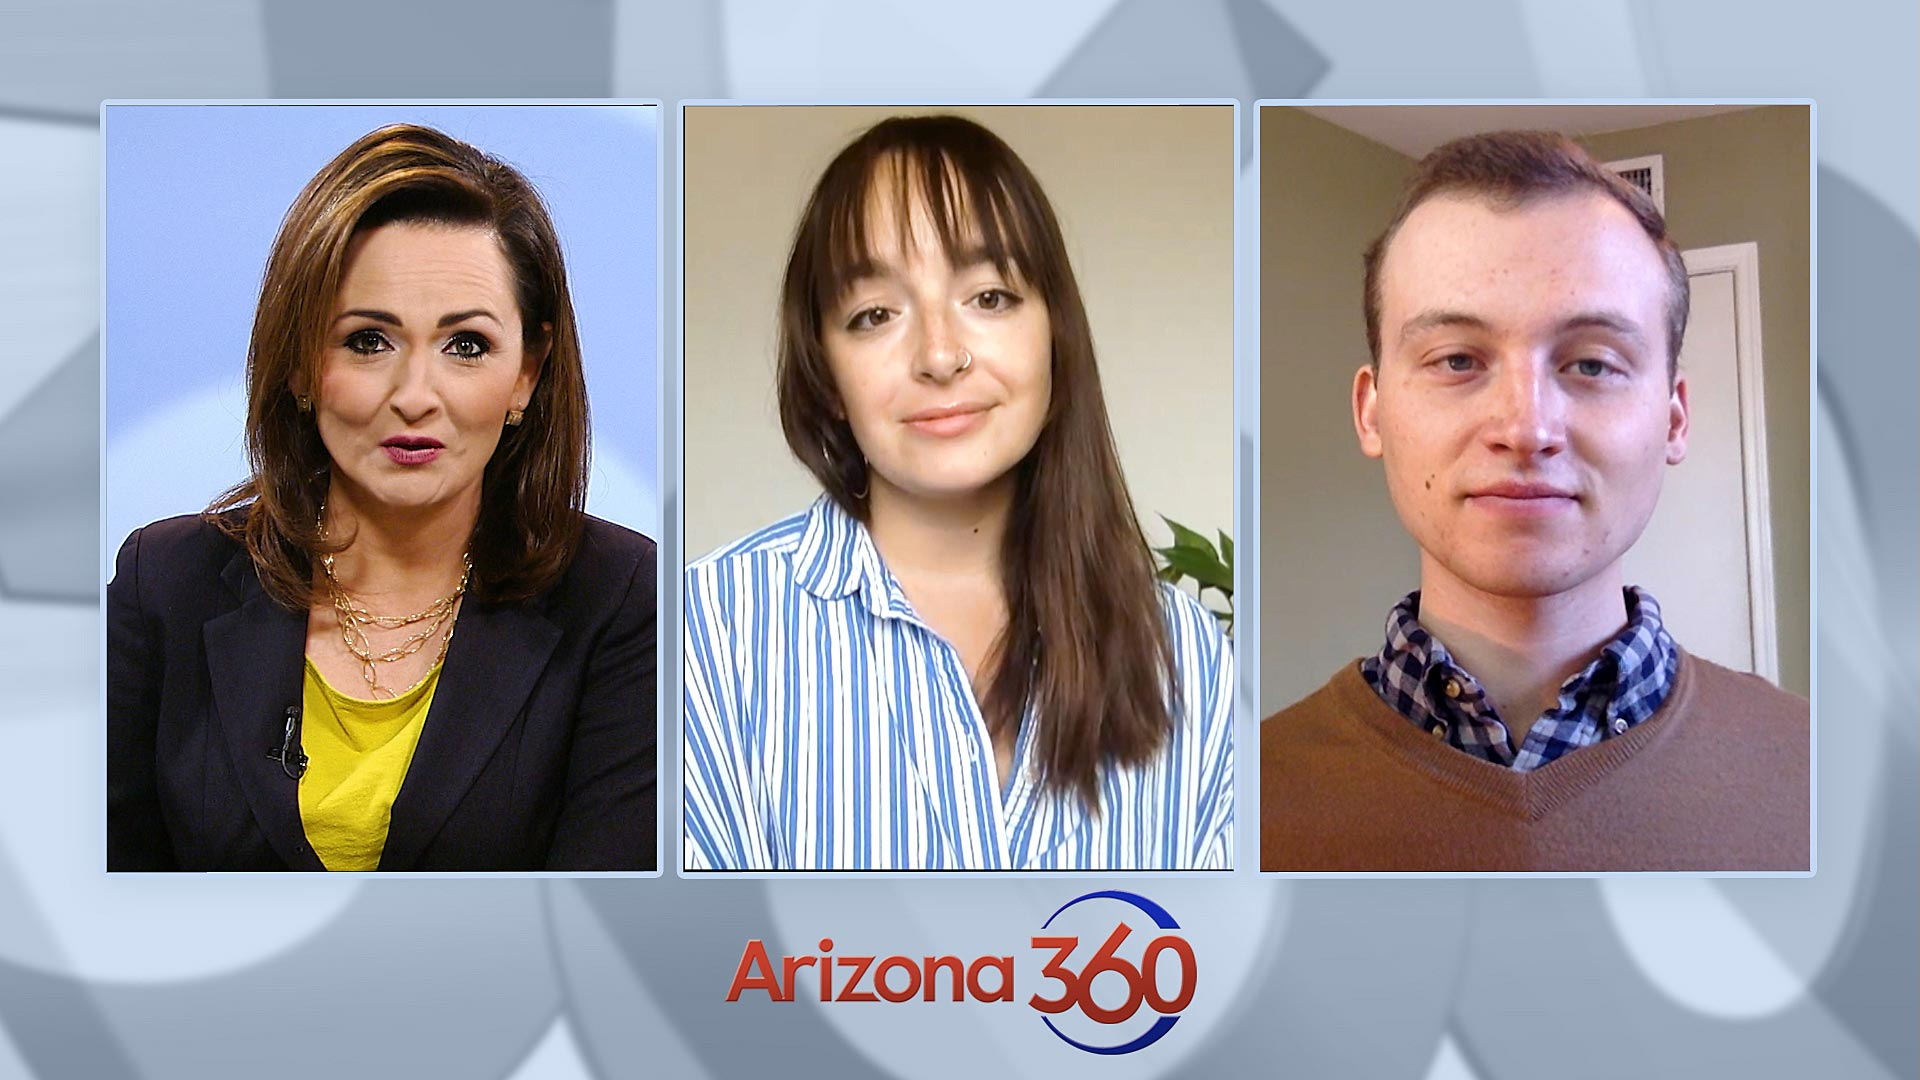 Arizona Public Media reporters Alisa Reznick (center) and Jake Steinberg (right) during an interview with Arizona 360 host Lorraine Rivera on Oct. 27, 2020.